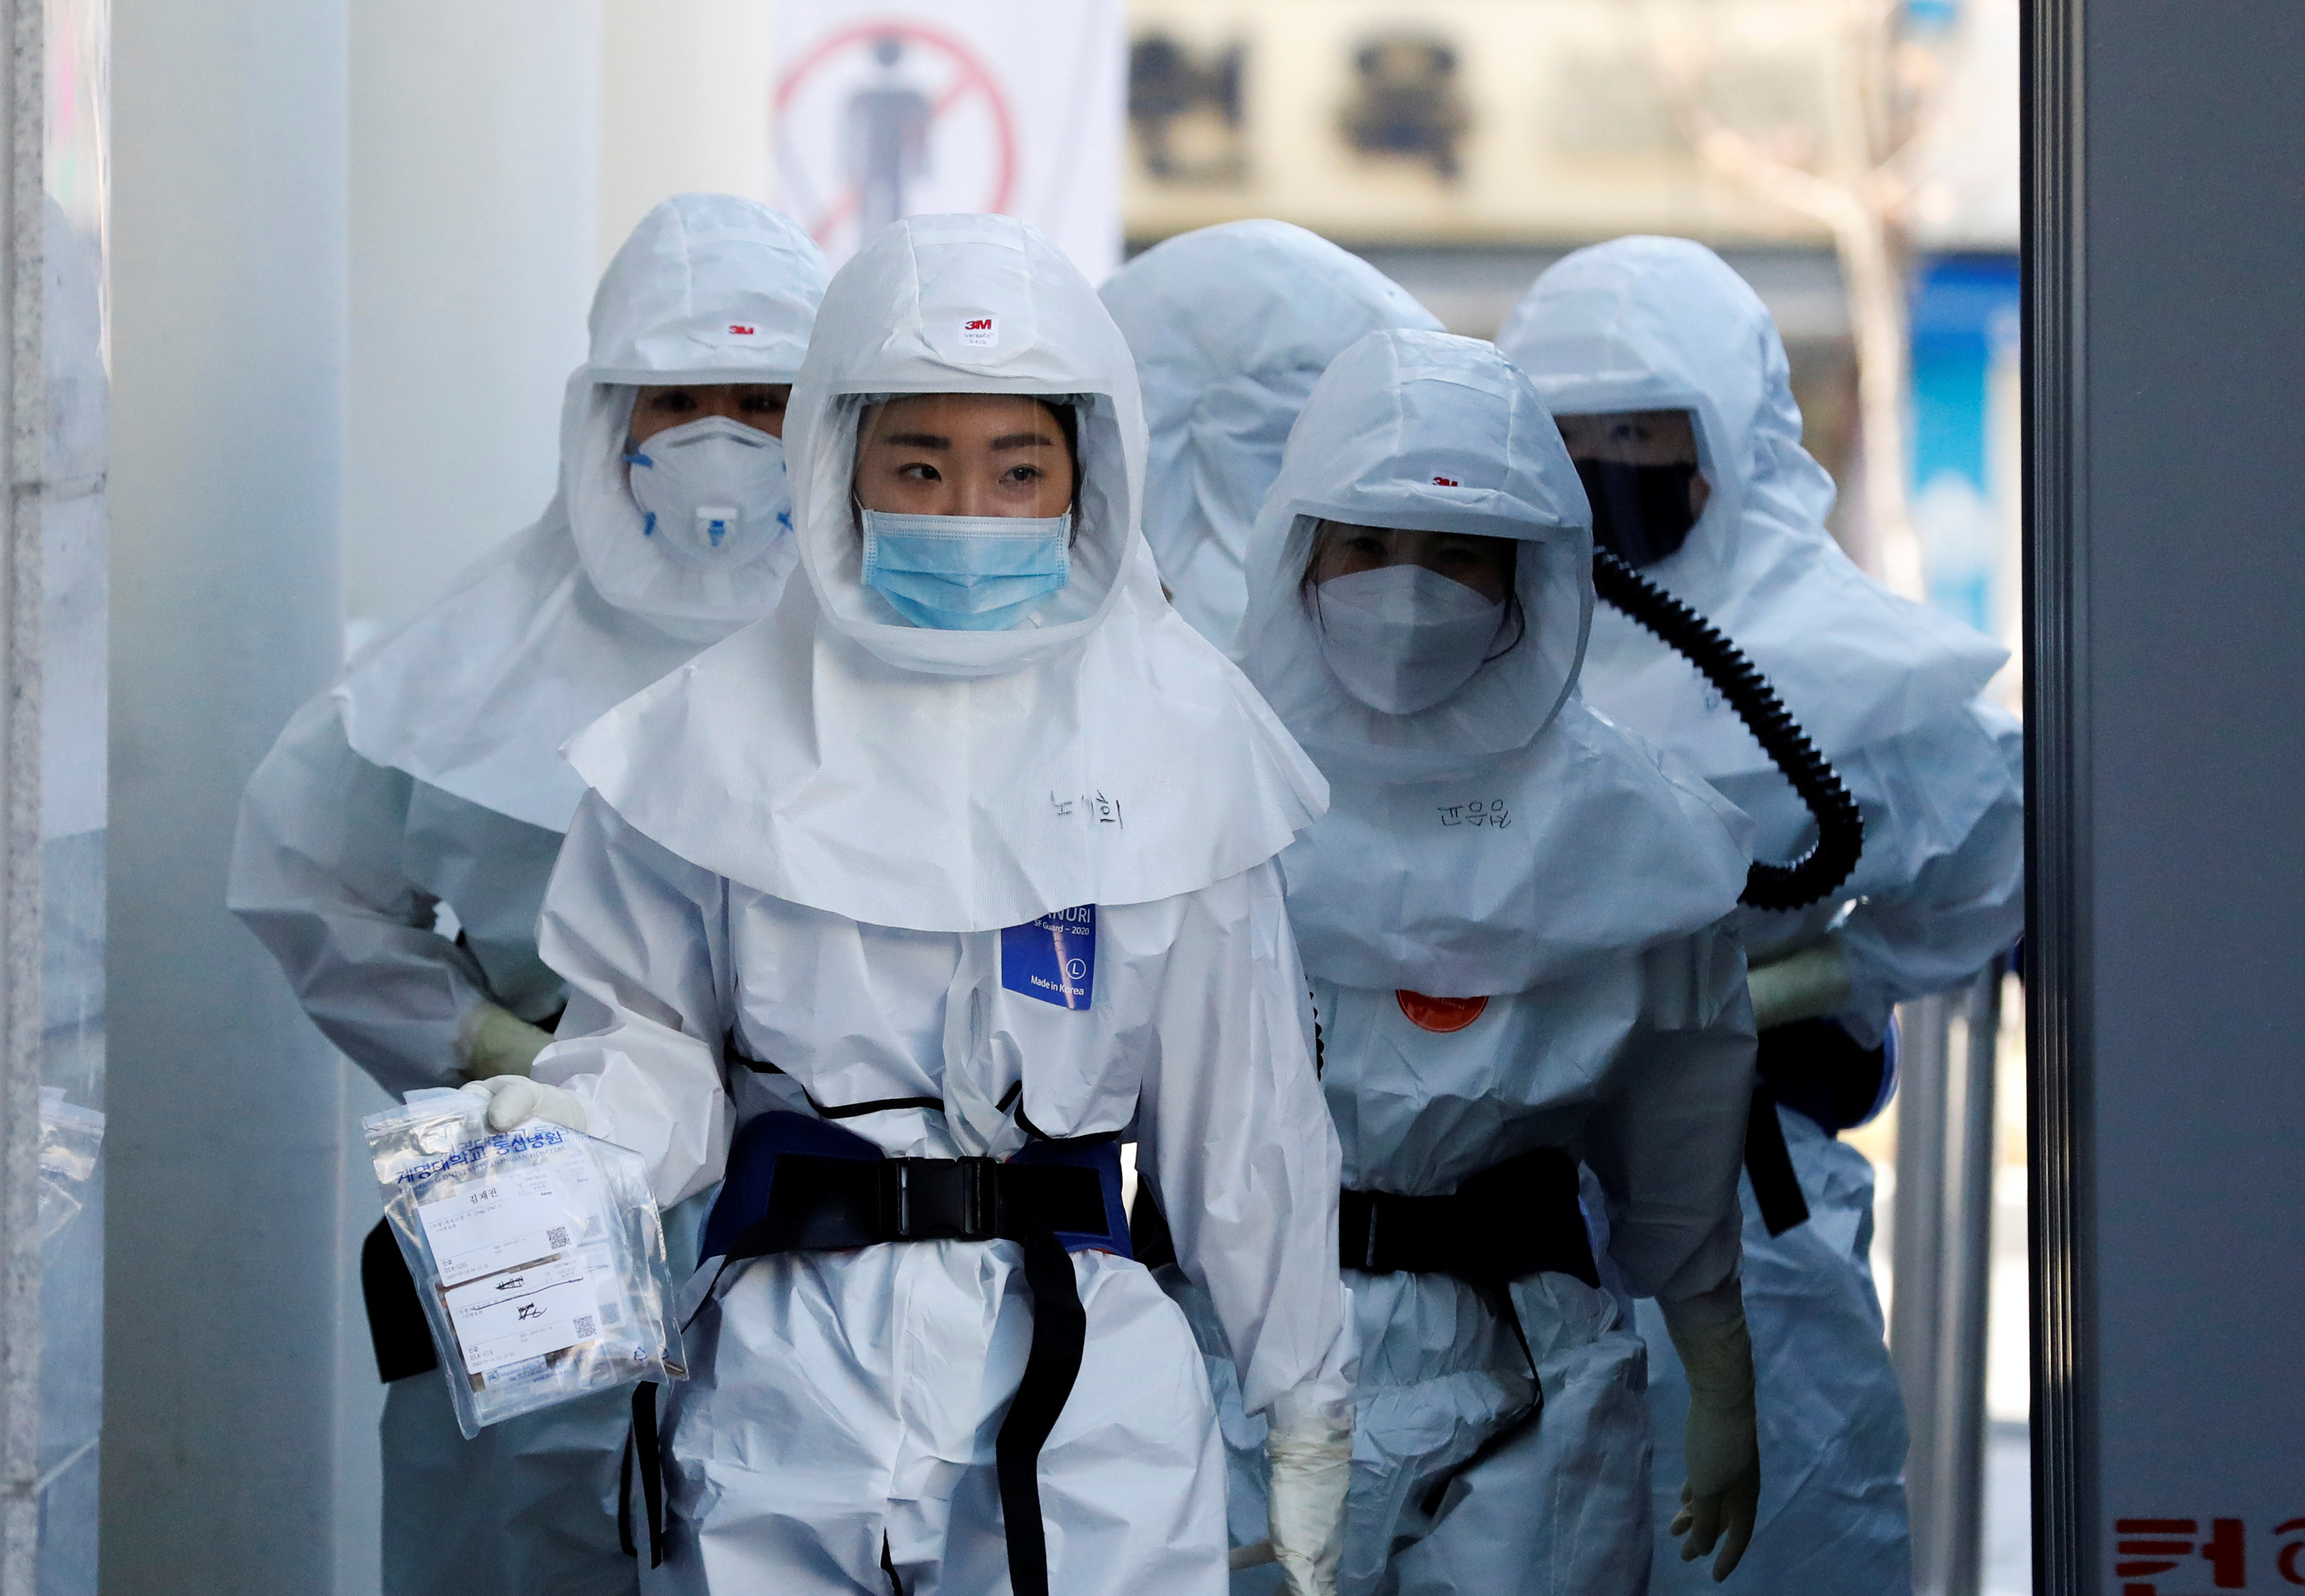 Medical workers head to a hospital facility to treat coronavirus patients amid the rise in confirmed cases of coronavirus disease (COVID-19) in Daegu, South Korea, March 14, 2020. REUTERS/Kim Kyung-Hoon - RC2LJF906NLX